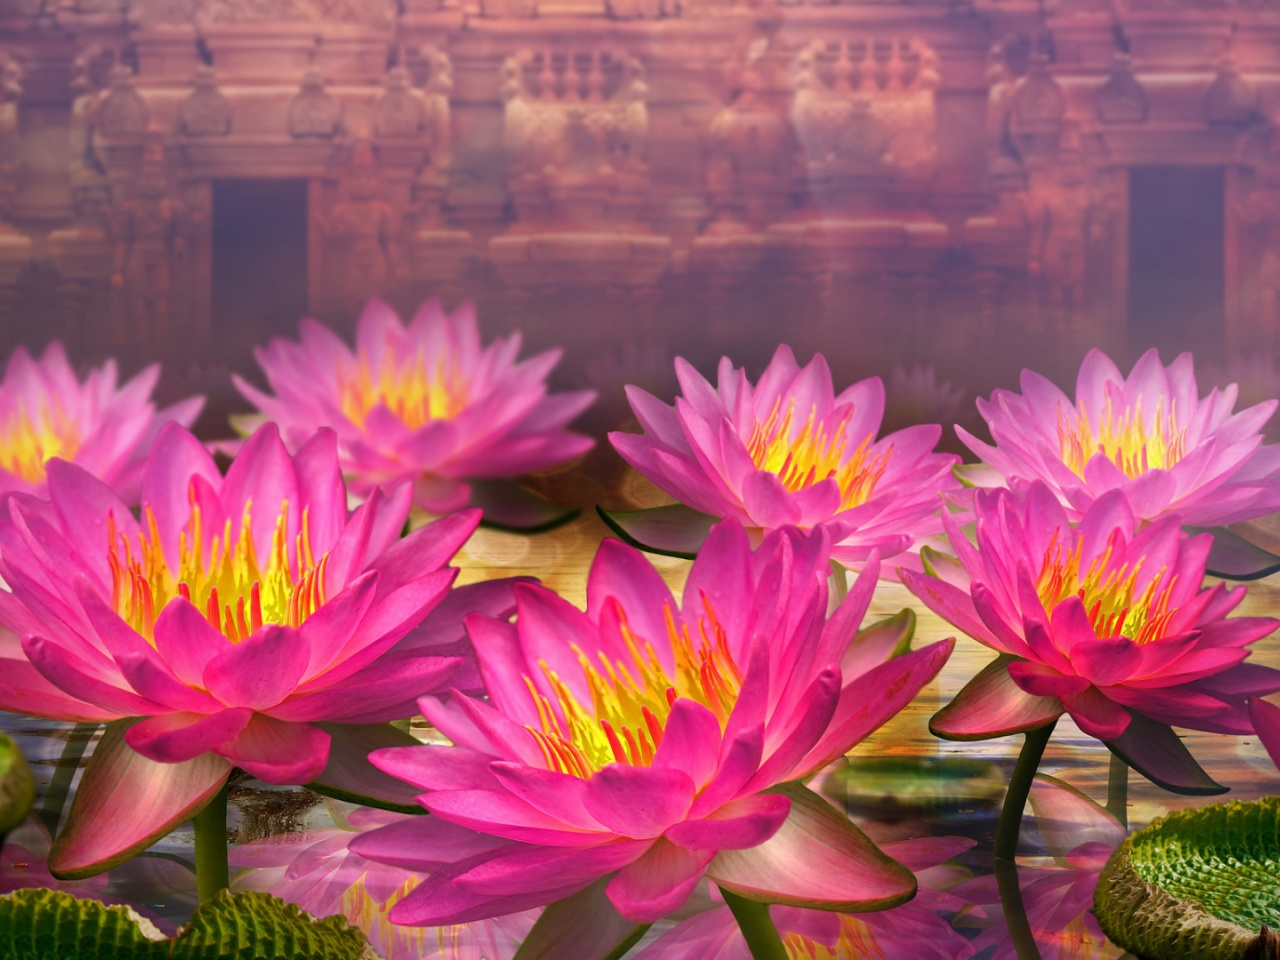 1280x720 Pink Lotus Flowers Vimeo Cover Image